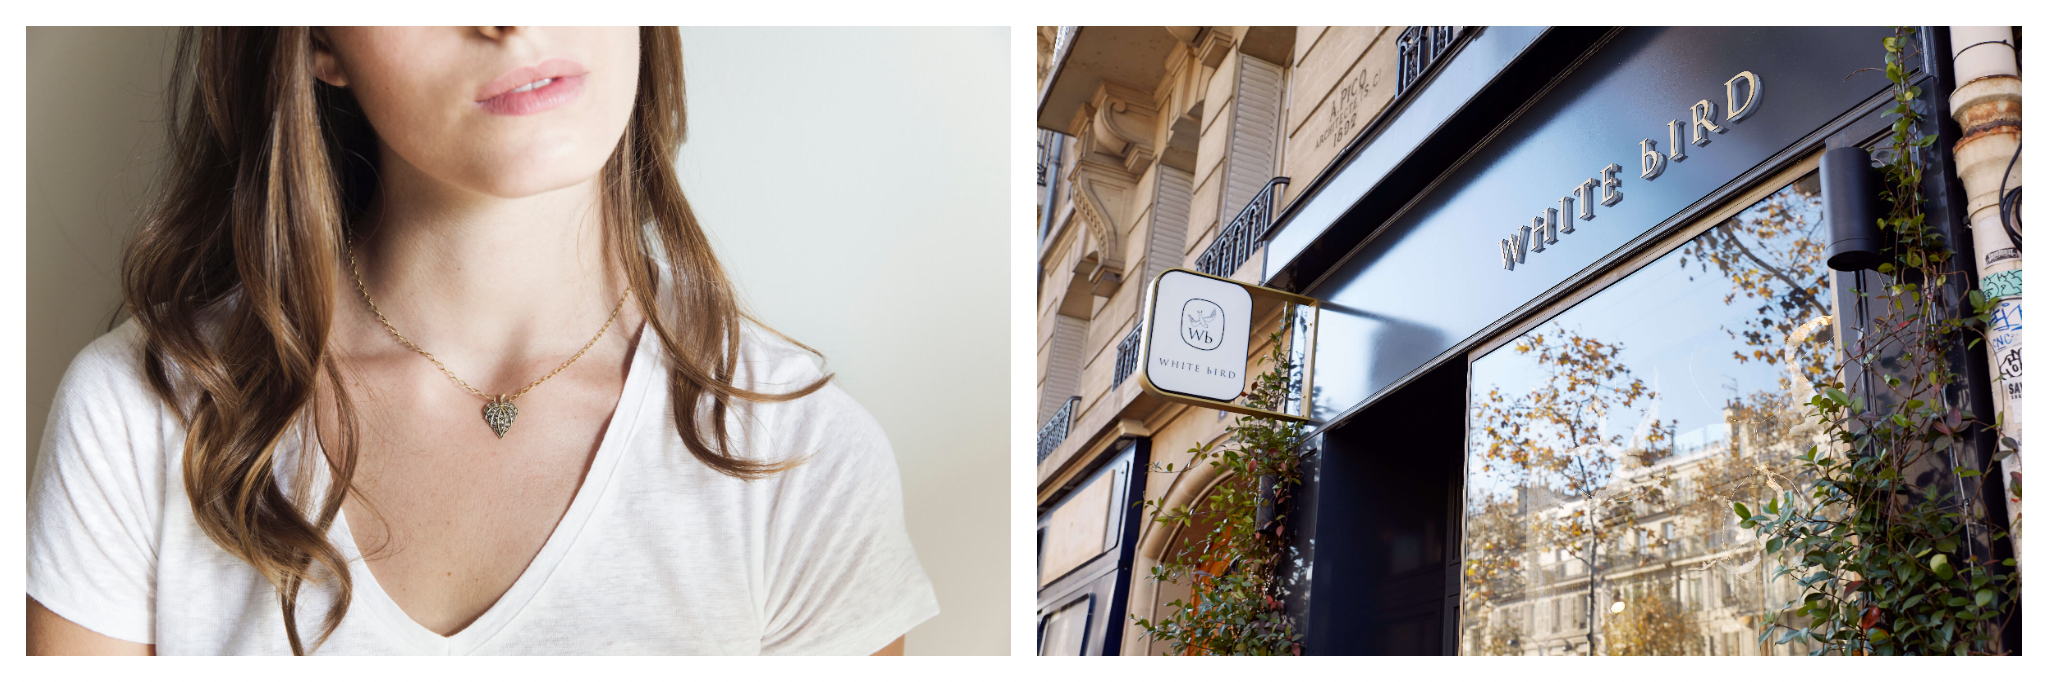 On left: A woman wears a simple jade-green pendant, strung on a gold chain. The jewelry comes from the internationally-curated collection of White Bird. On right: The White Bird storefront welcomes visitors at one of their three Paris locations, where shoppers can discover pieces created by independent jewelers.